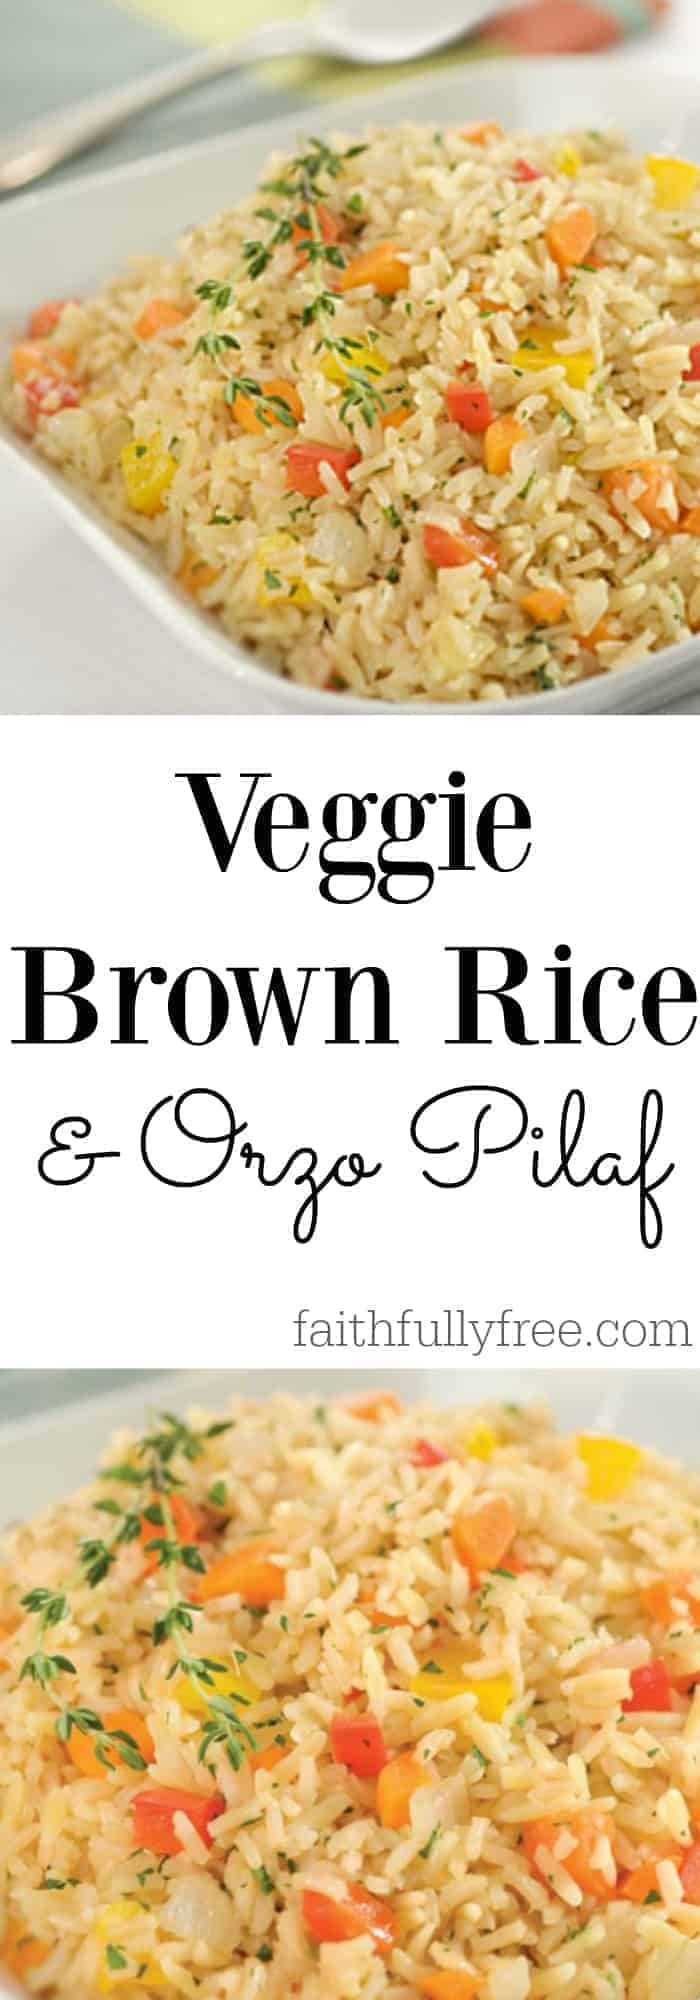 Amazing Veggie Brown Rice & Orzo Pilaf